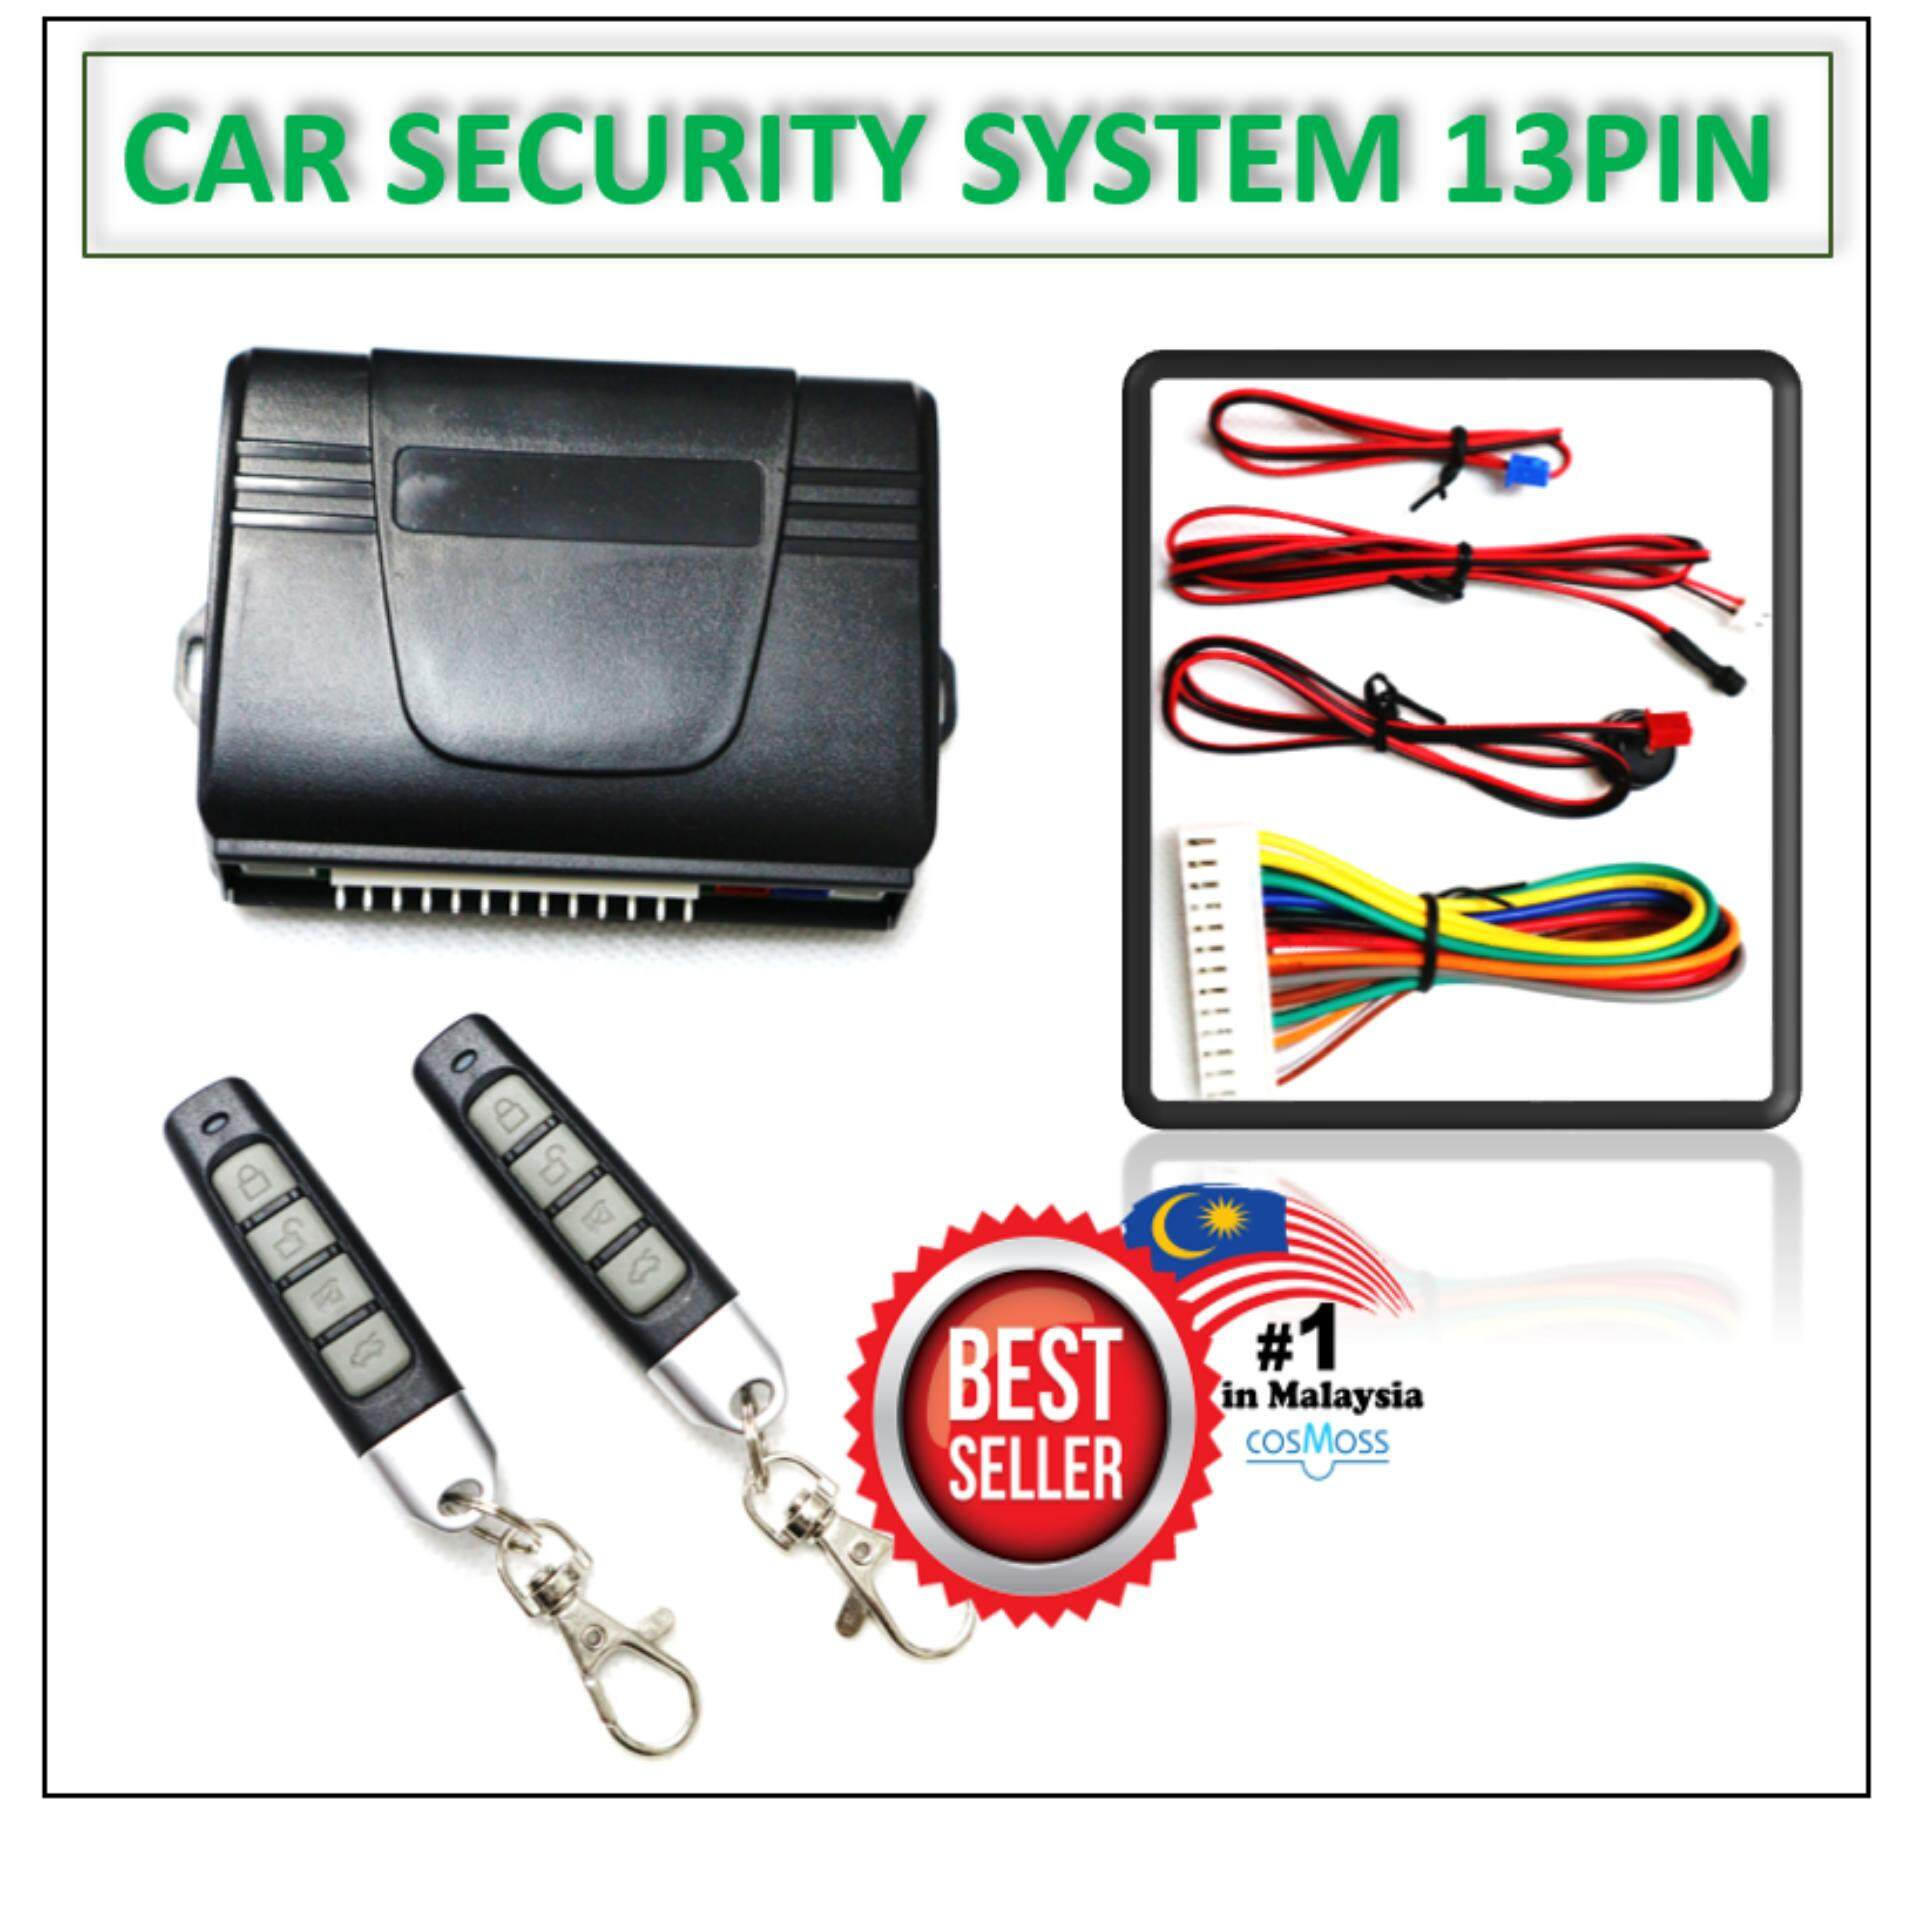 Alarm 081 - Car Security System (13 PIN) T-MAZ on